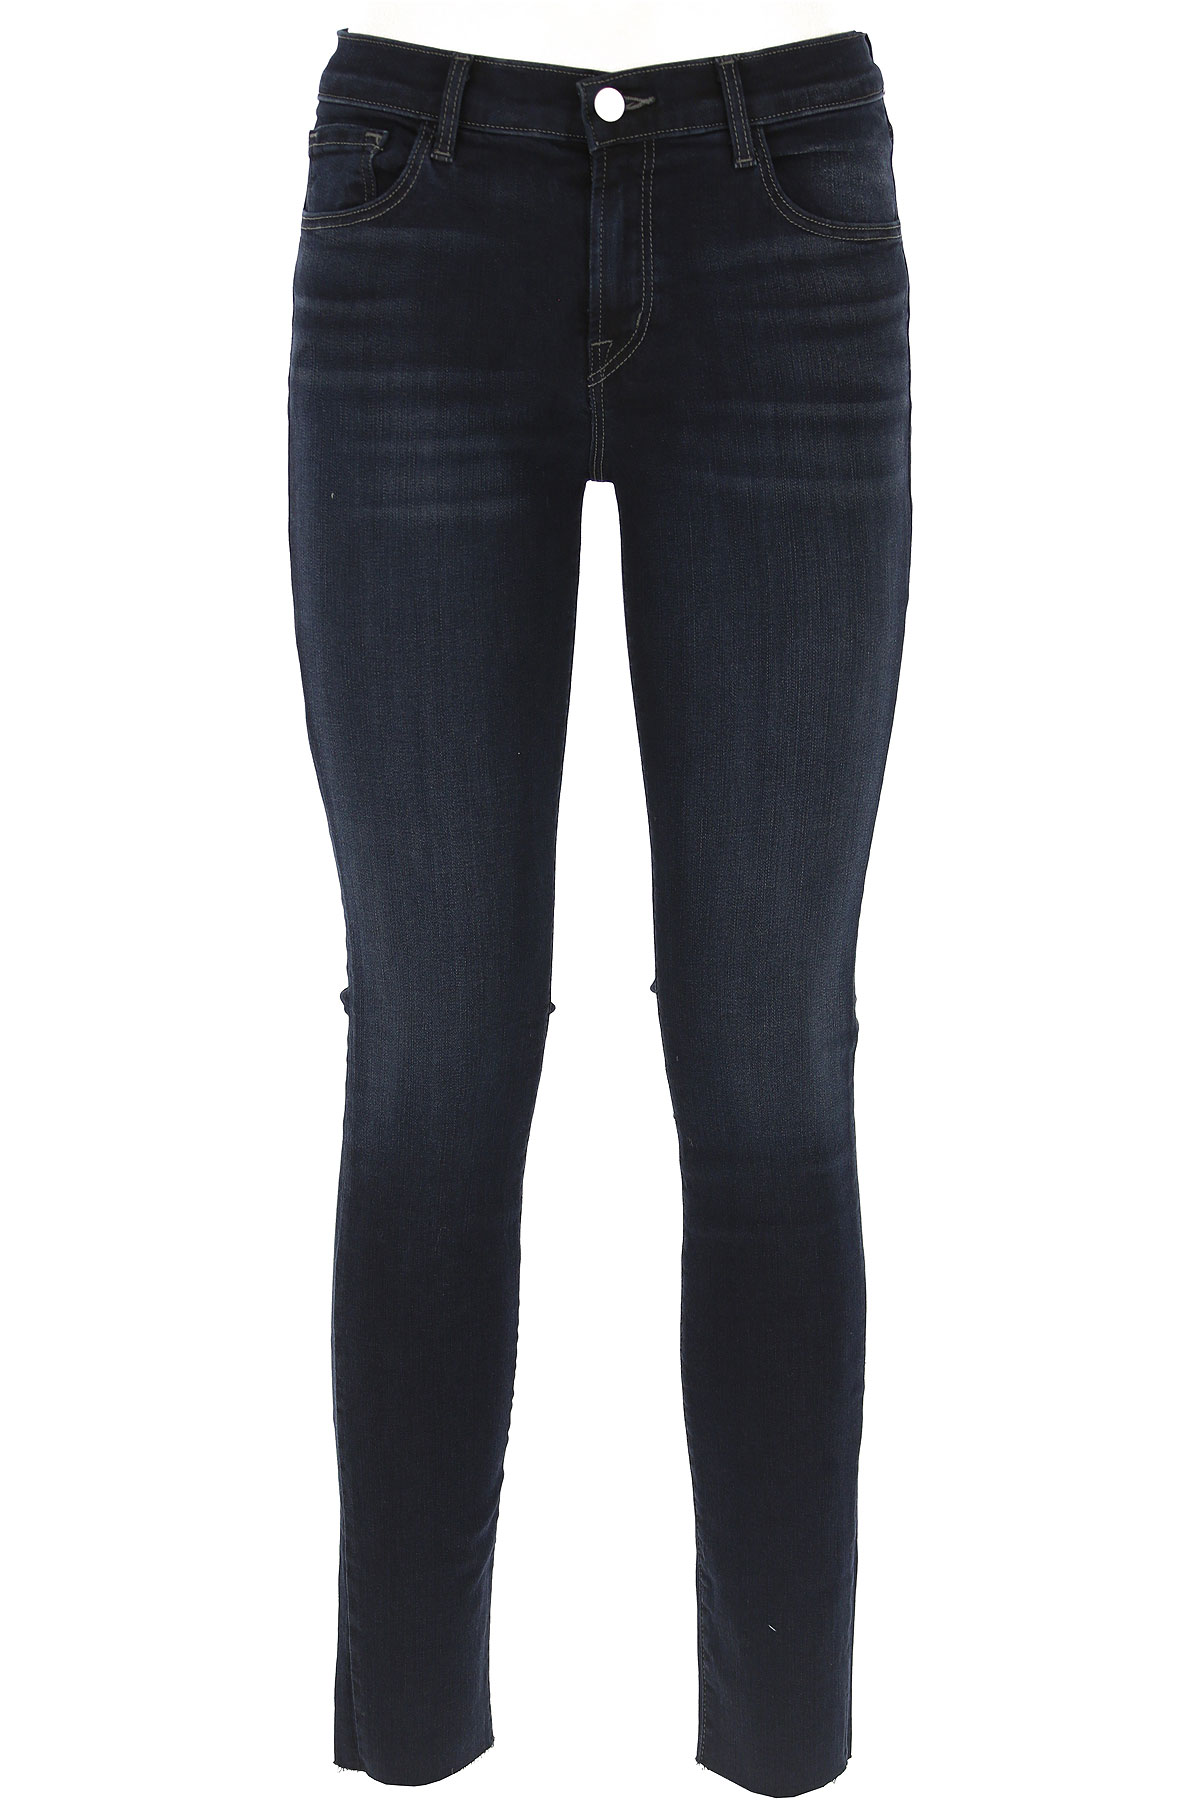 Image of J Brand Jeans, Dark Blue, Cotton, 2017, 24 25 26 27 28 29 30